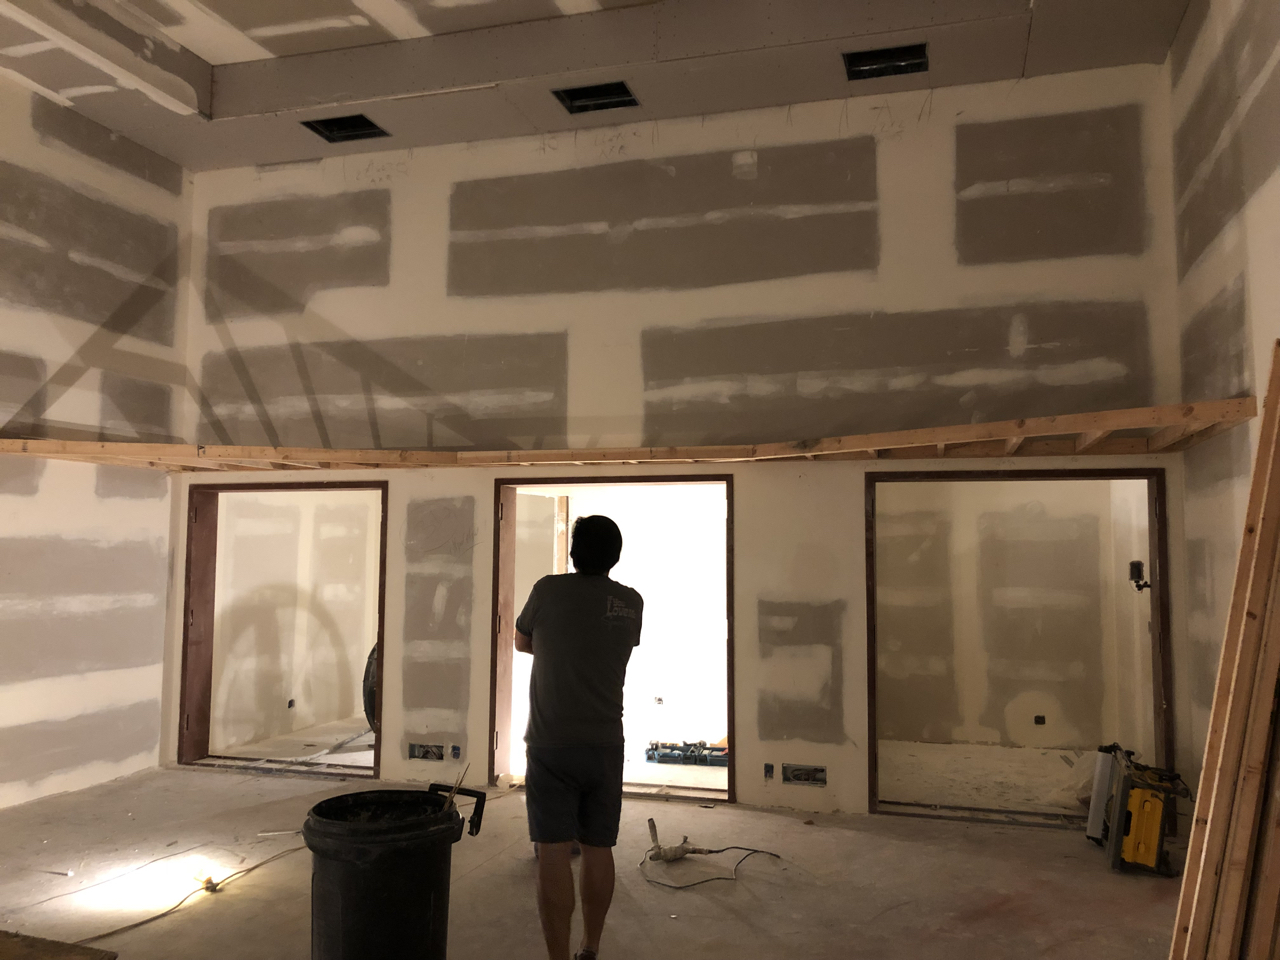 Looking at the booths in tracking room 1. The simple soffits do so much to break up the boxy nature of the room and add architectural interest.